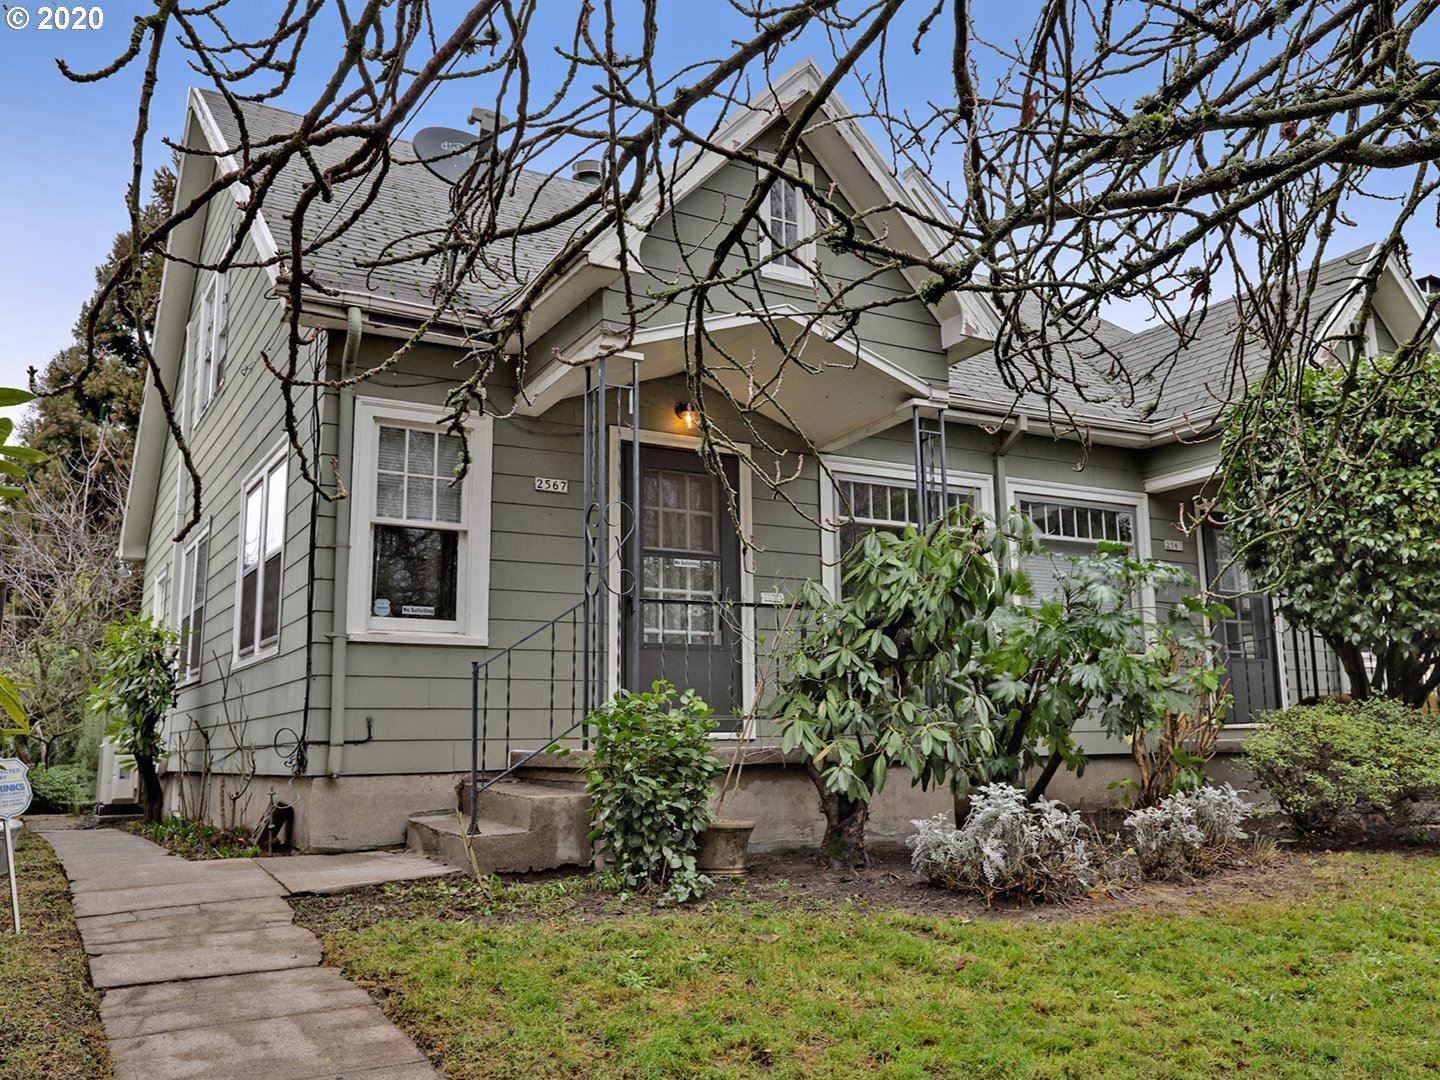 2567 NW RALEIGH ST, Portland, OR 97210 - MLS#: 20602963